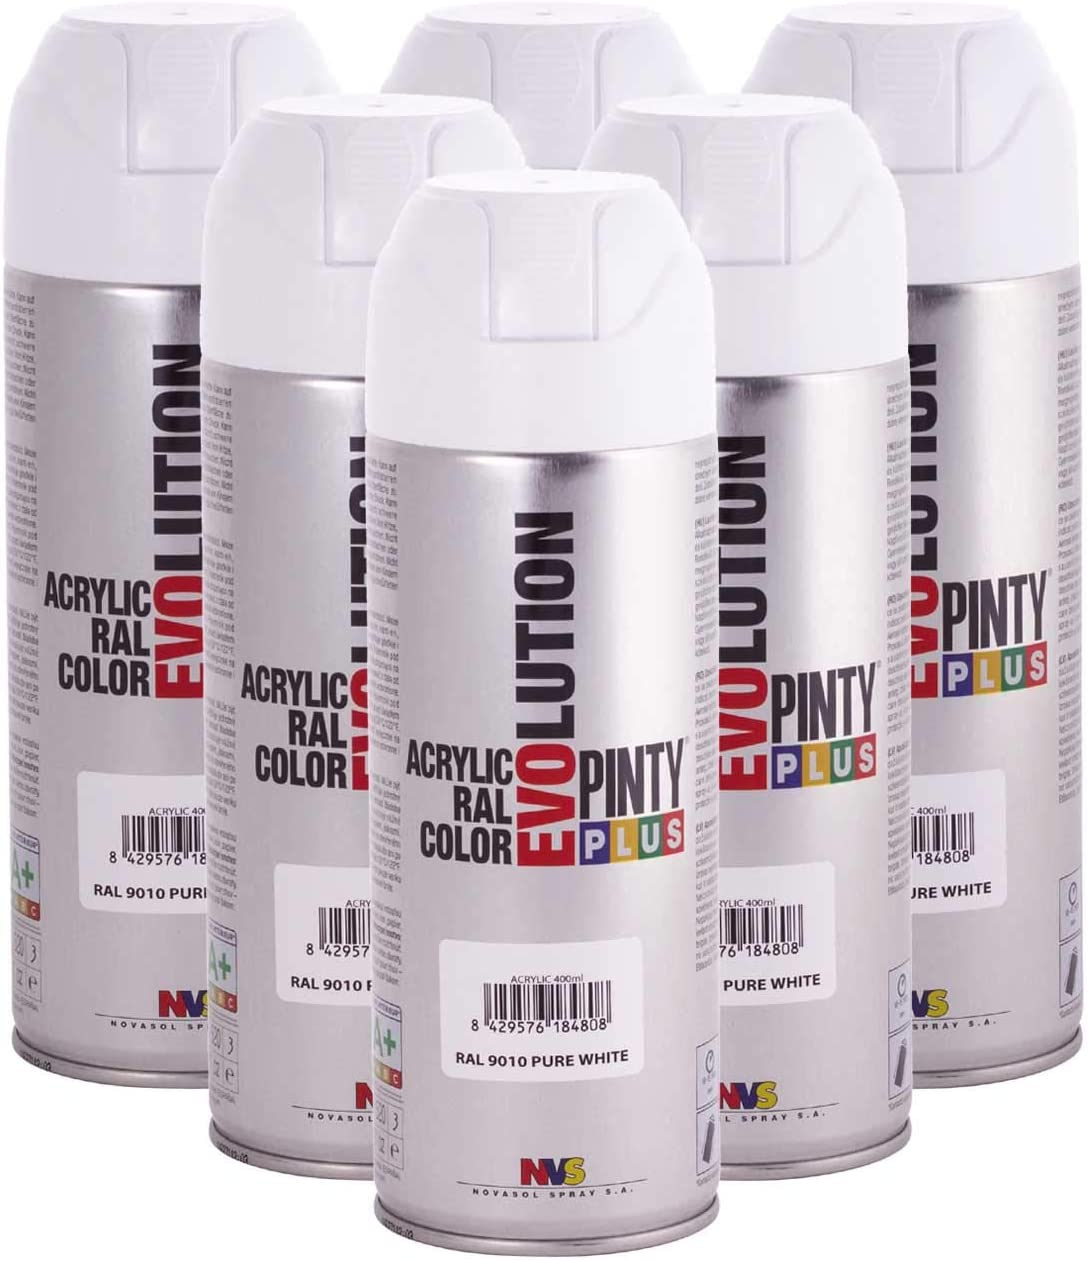 Pintyplus Evolution Solvent Based Spray Paint - 11oz, Pure White. Fast Dry, Acrylic Spray Paint For Wood, Stone, Cardboard and Paper. Low Odor. RAL 9010. Pack of 6